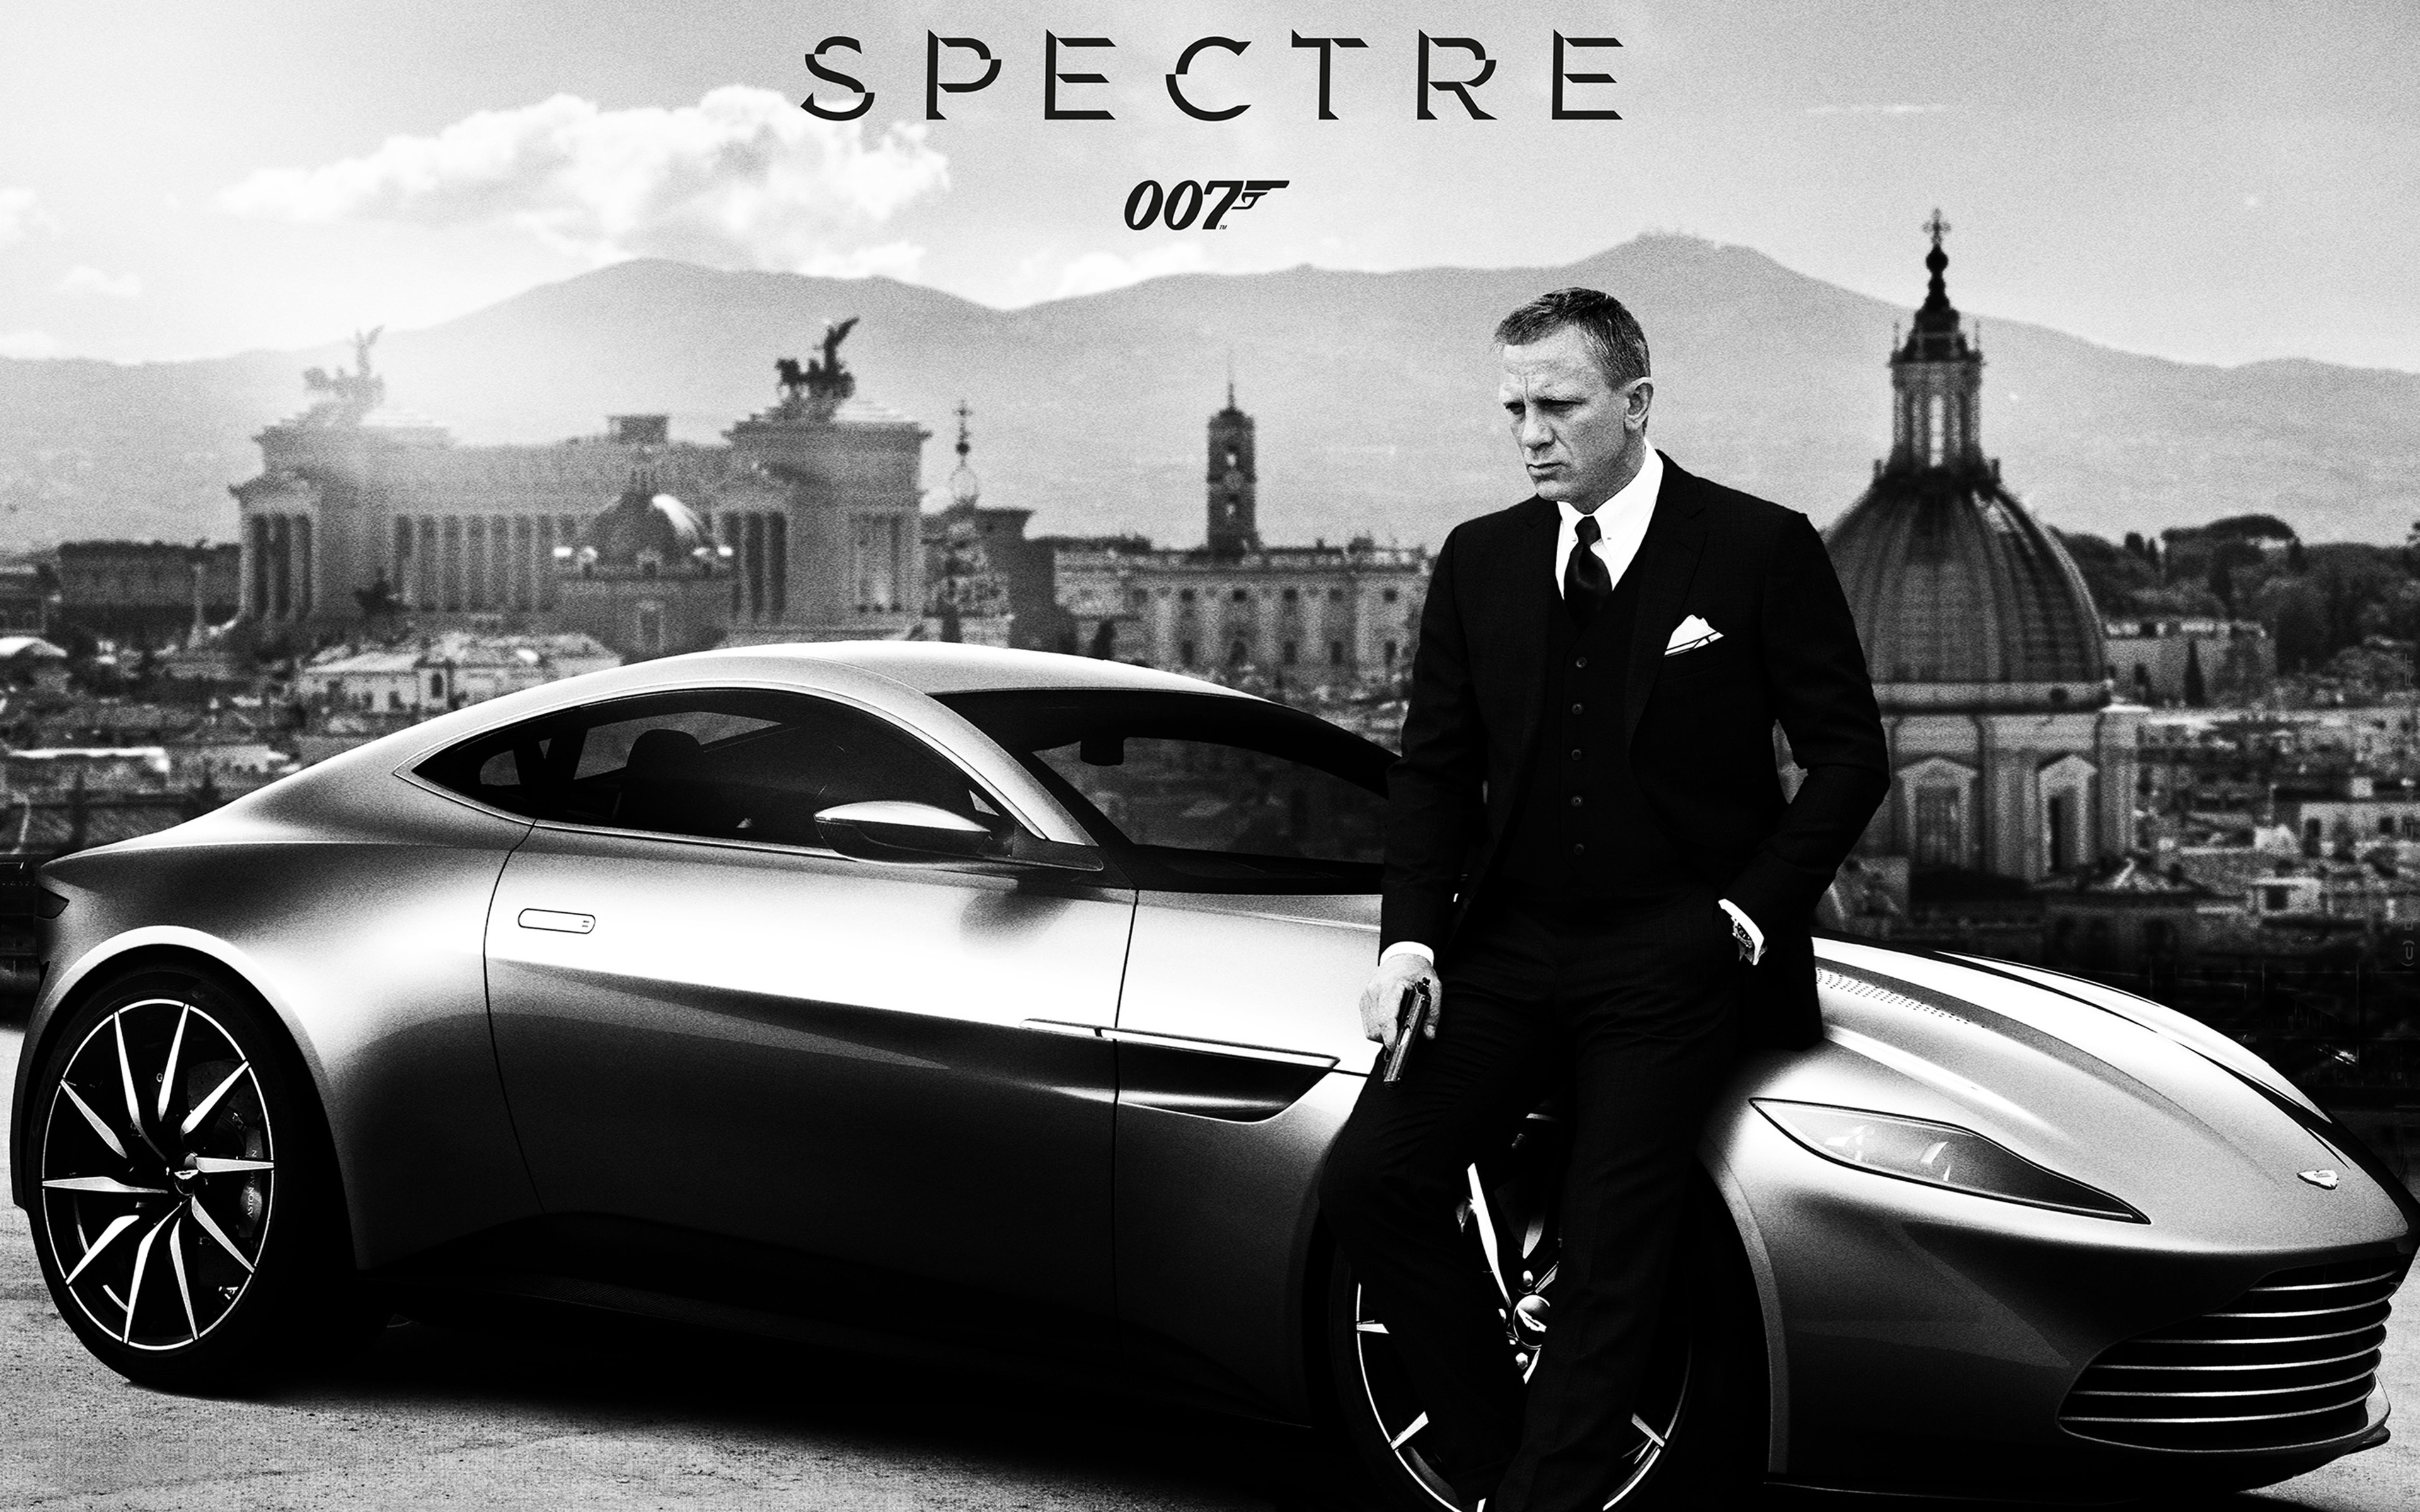 Spectre-Movie-Daniel-Craig-Aston-Martin-DB10-BLack-And-White-WallpapersByte-com-3840x2400